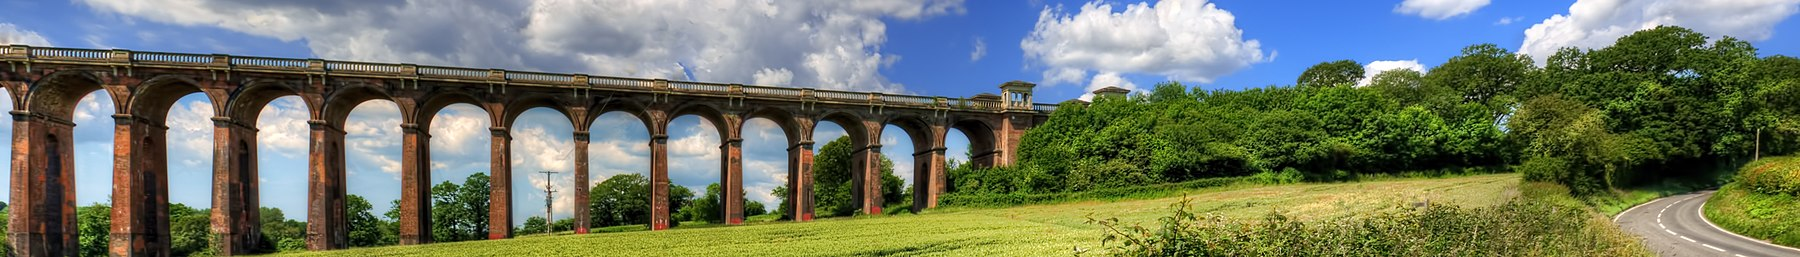 West Sussex banner Balcombe Viaduct.jpg